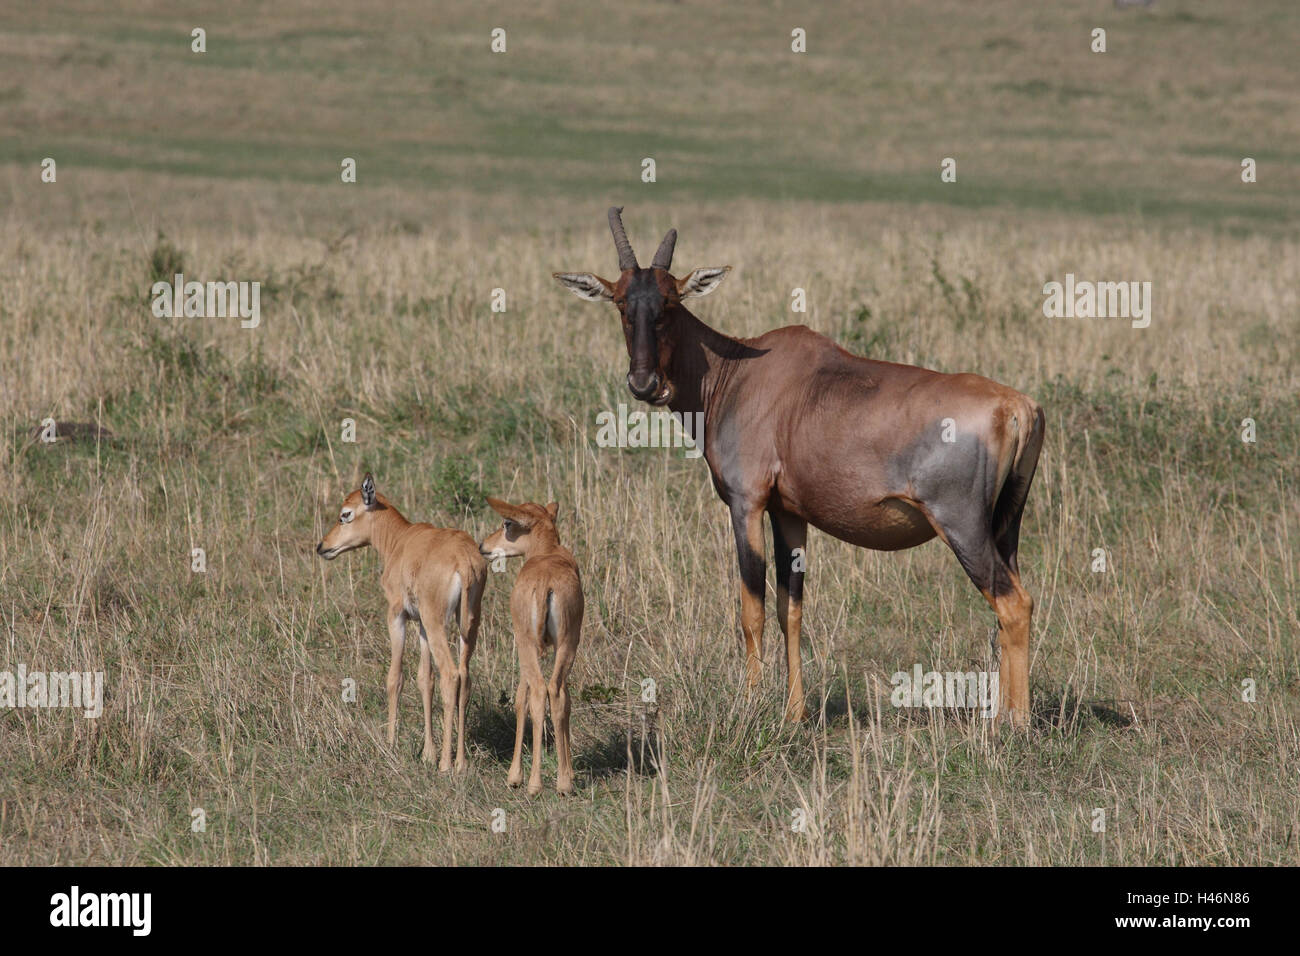 Lyre antelope with young animals, - Stock Image